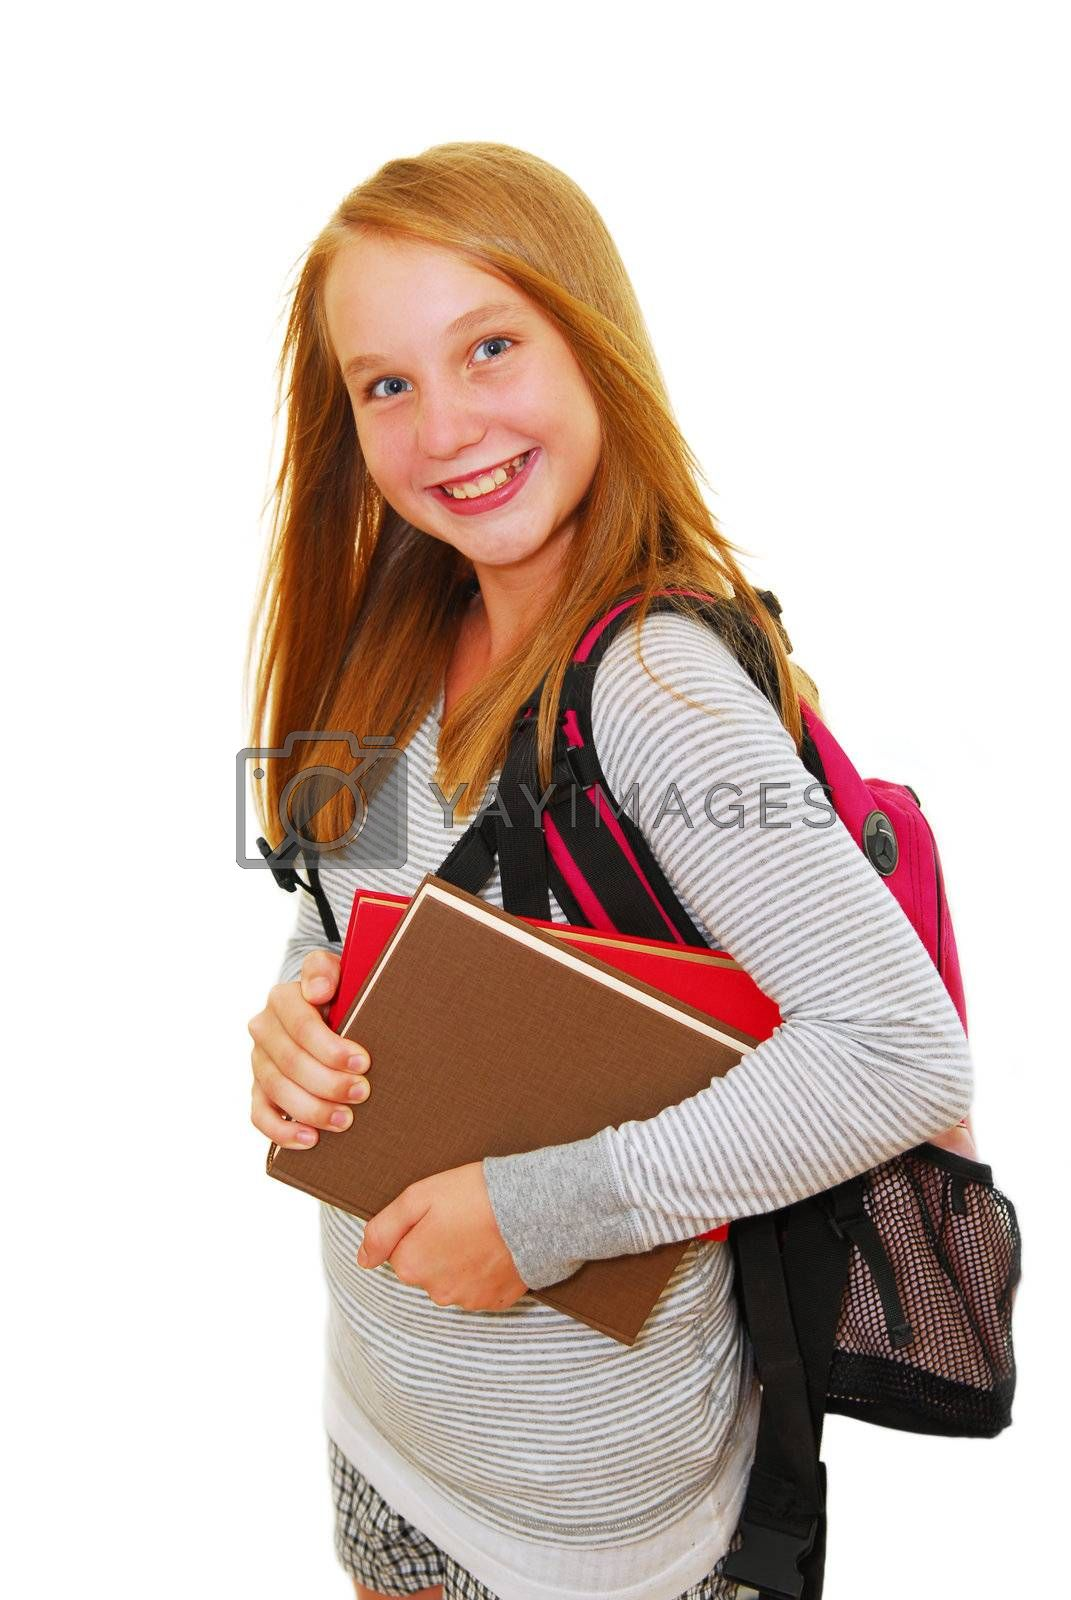 Young smiling school girl with backpack and books isolated on white background